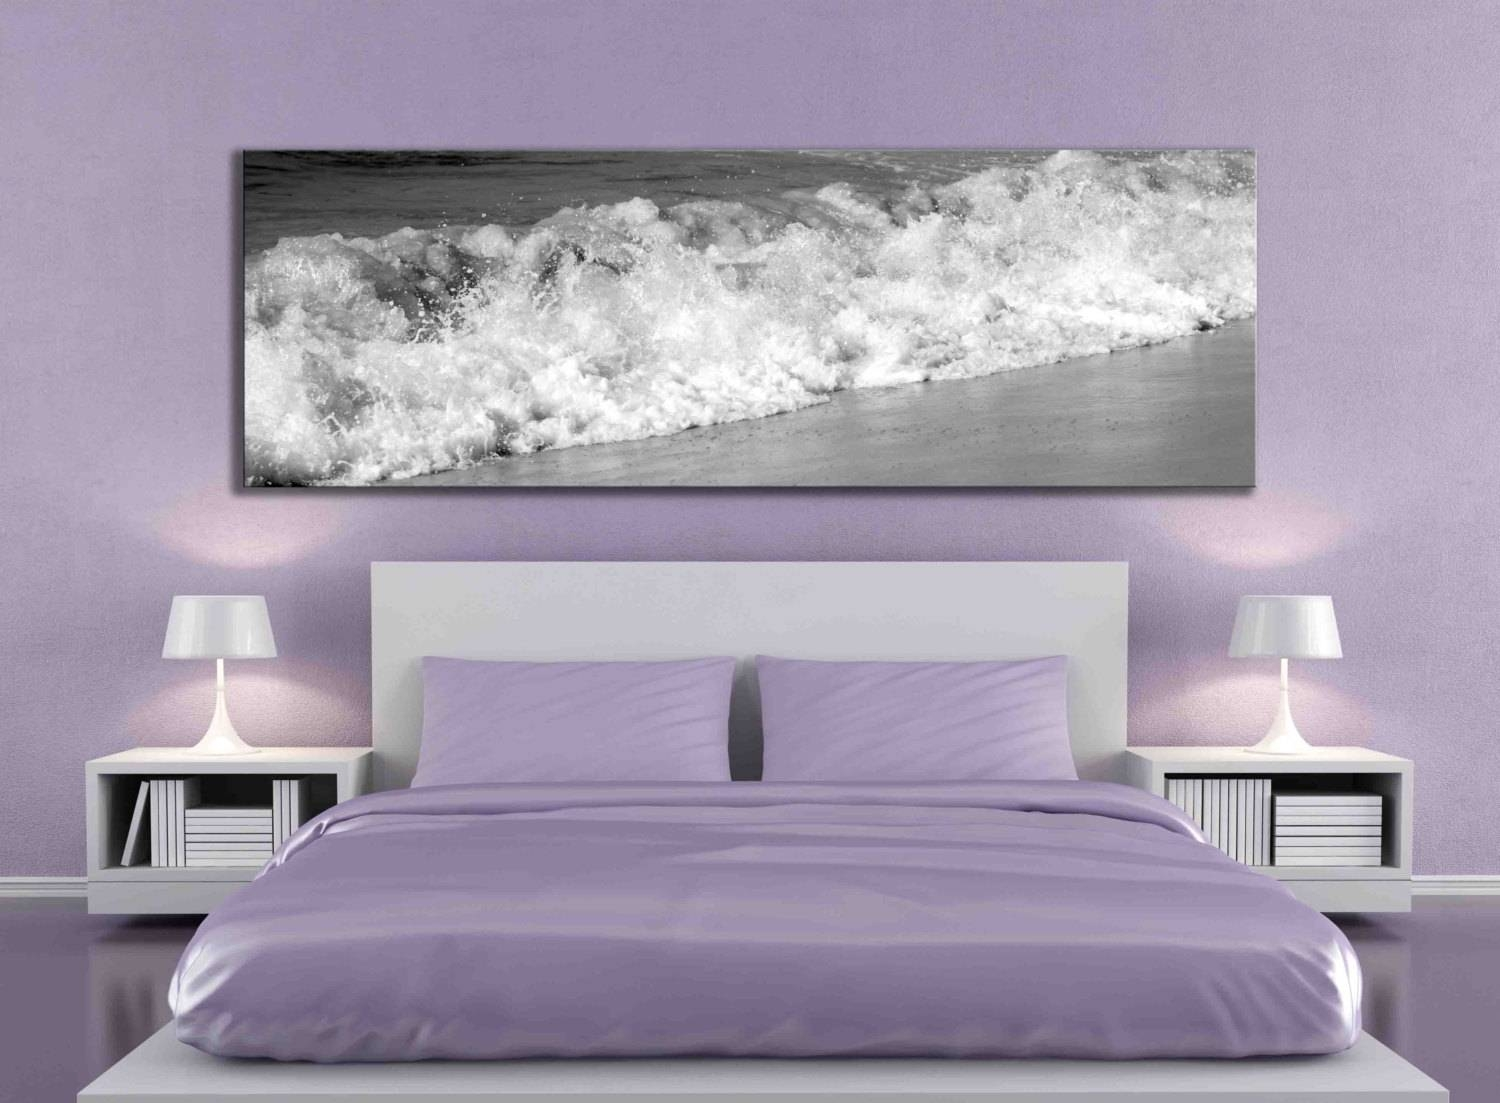 Big Panoramic Black And White Water Beach Ocean Artwork Sand Pertaining To Current Over The Bed Wall Art (View 4 of 20)